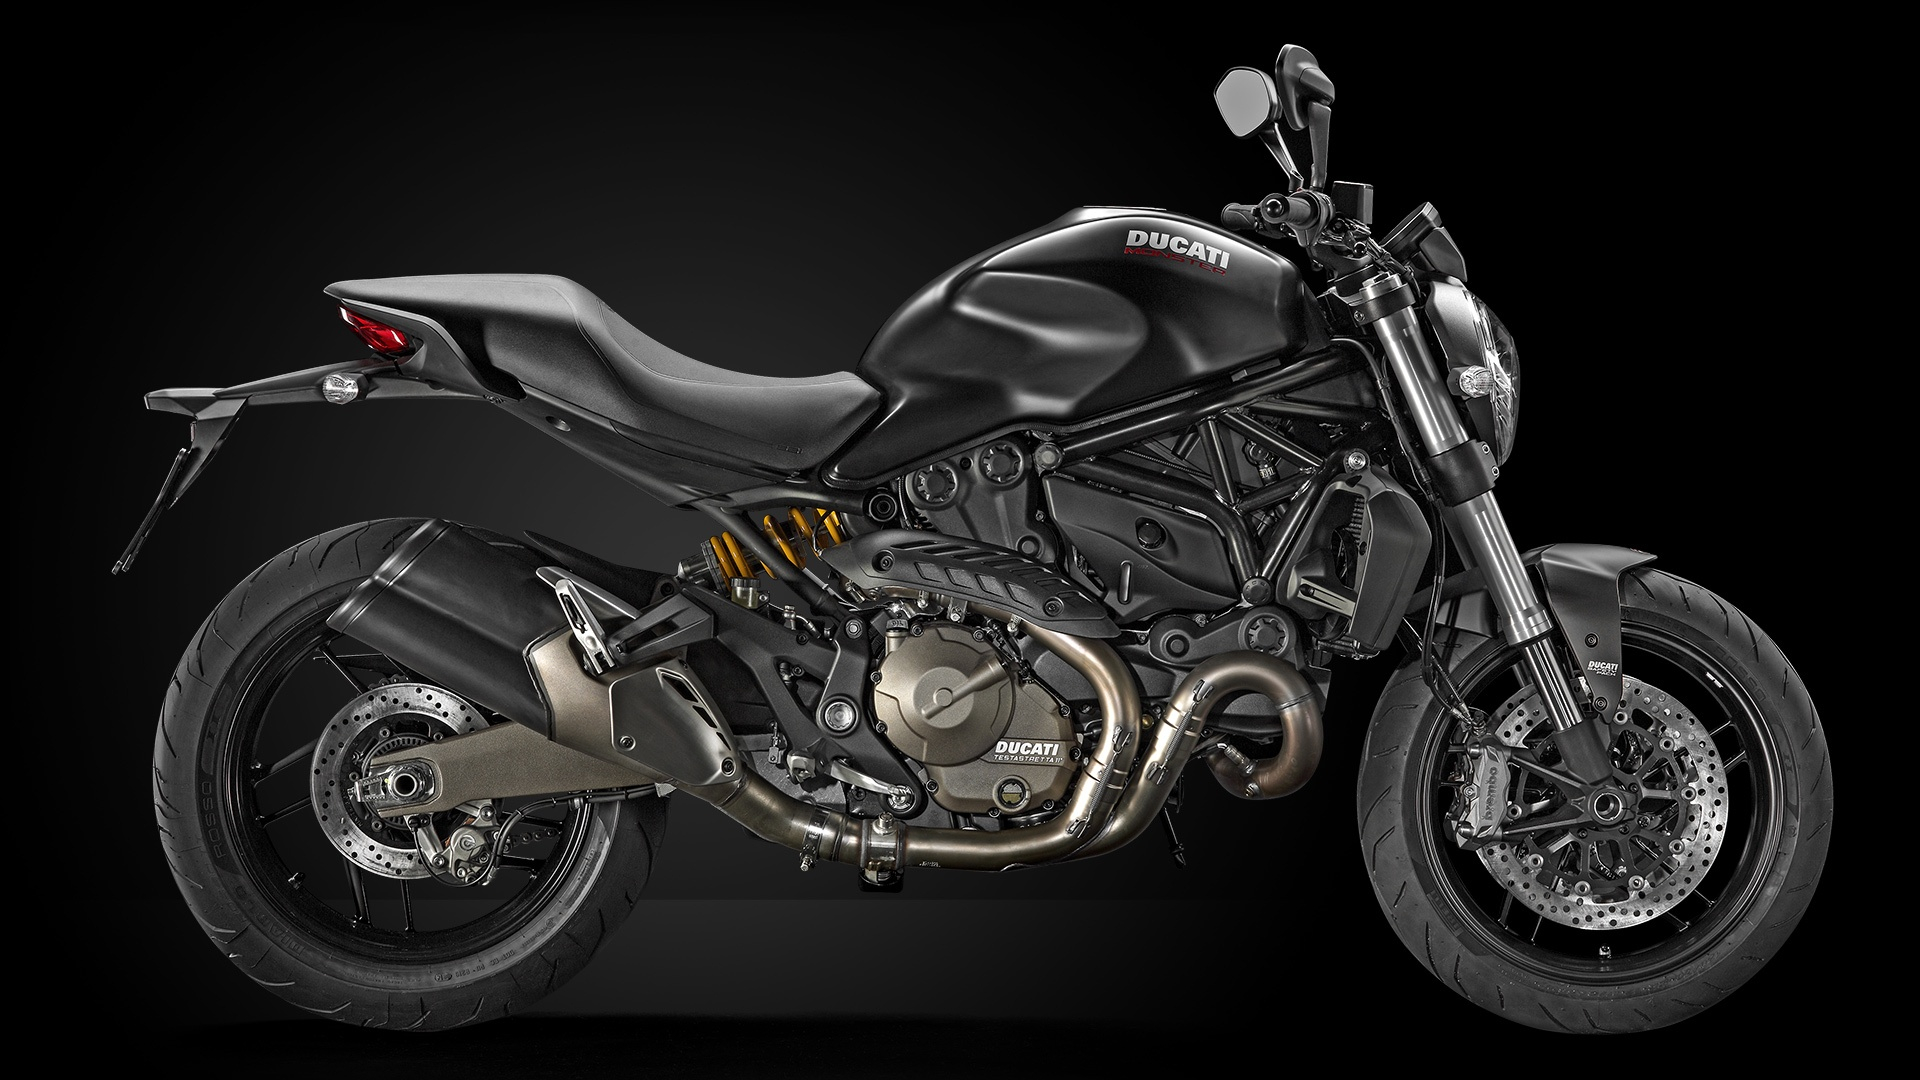 Two Weeks With the Ducati Monster 821 Dark